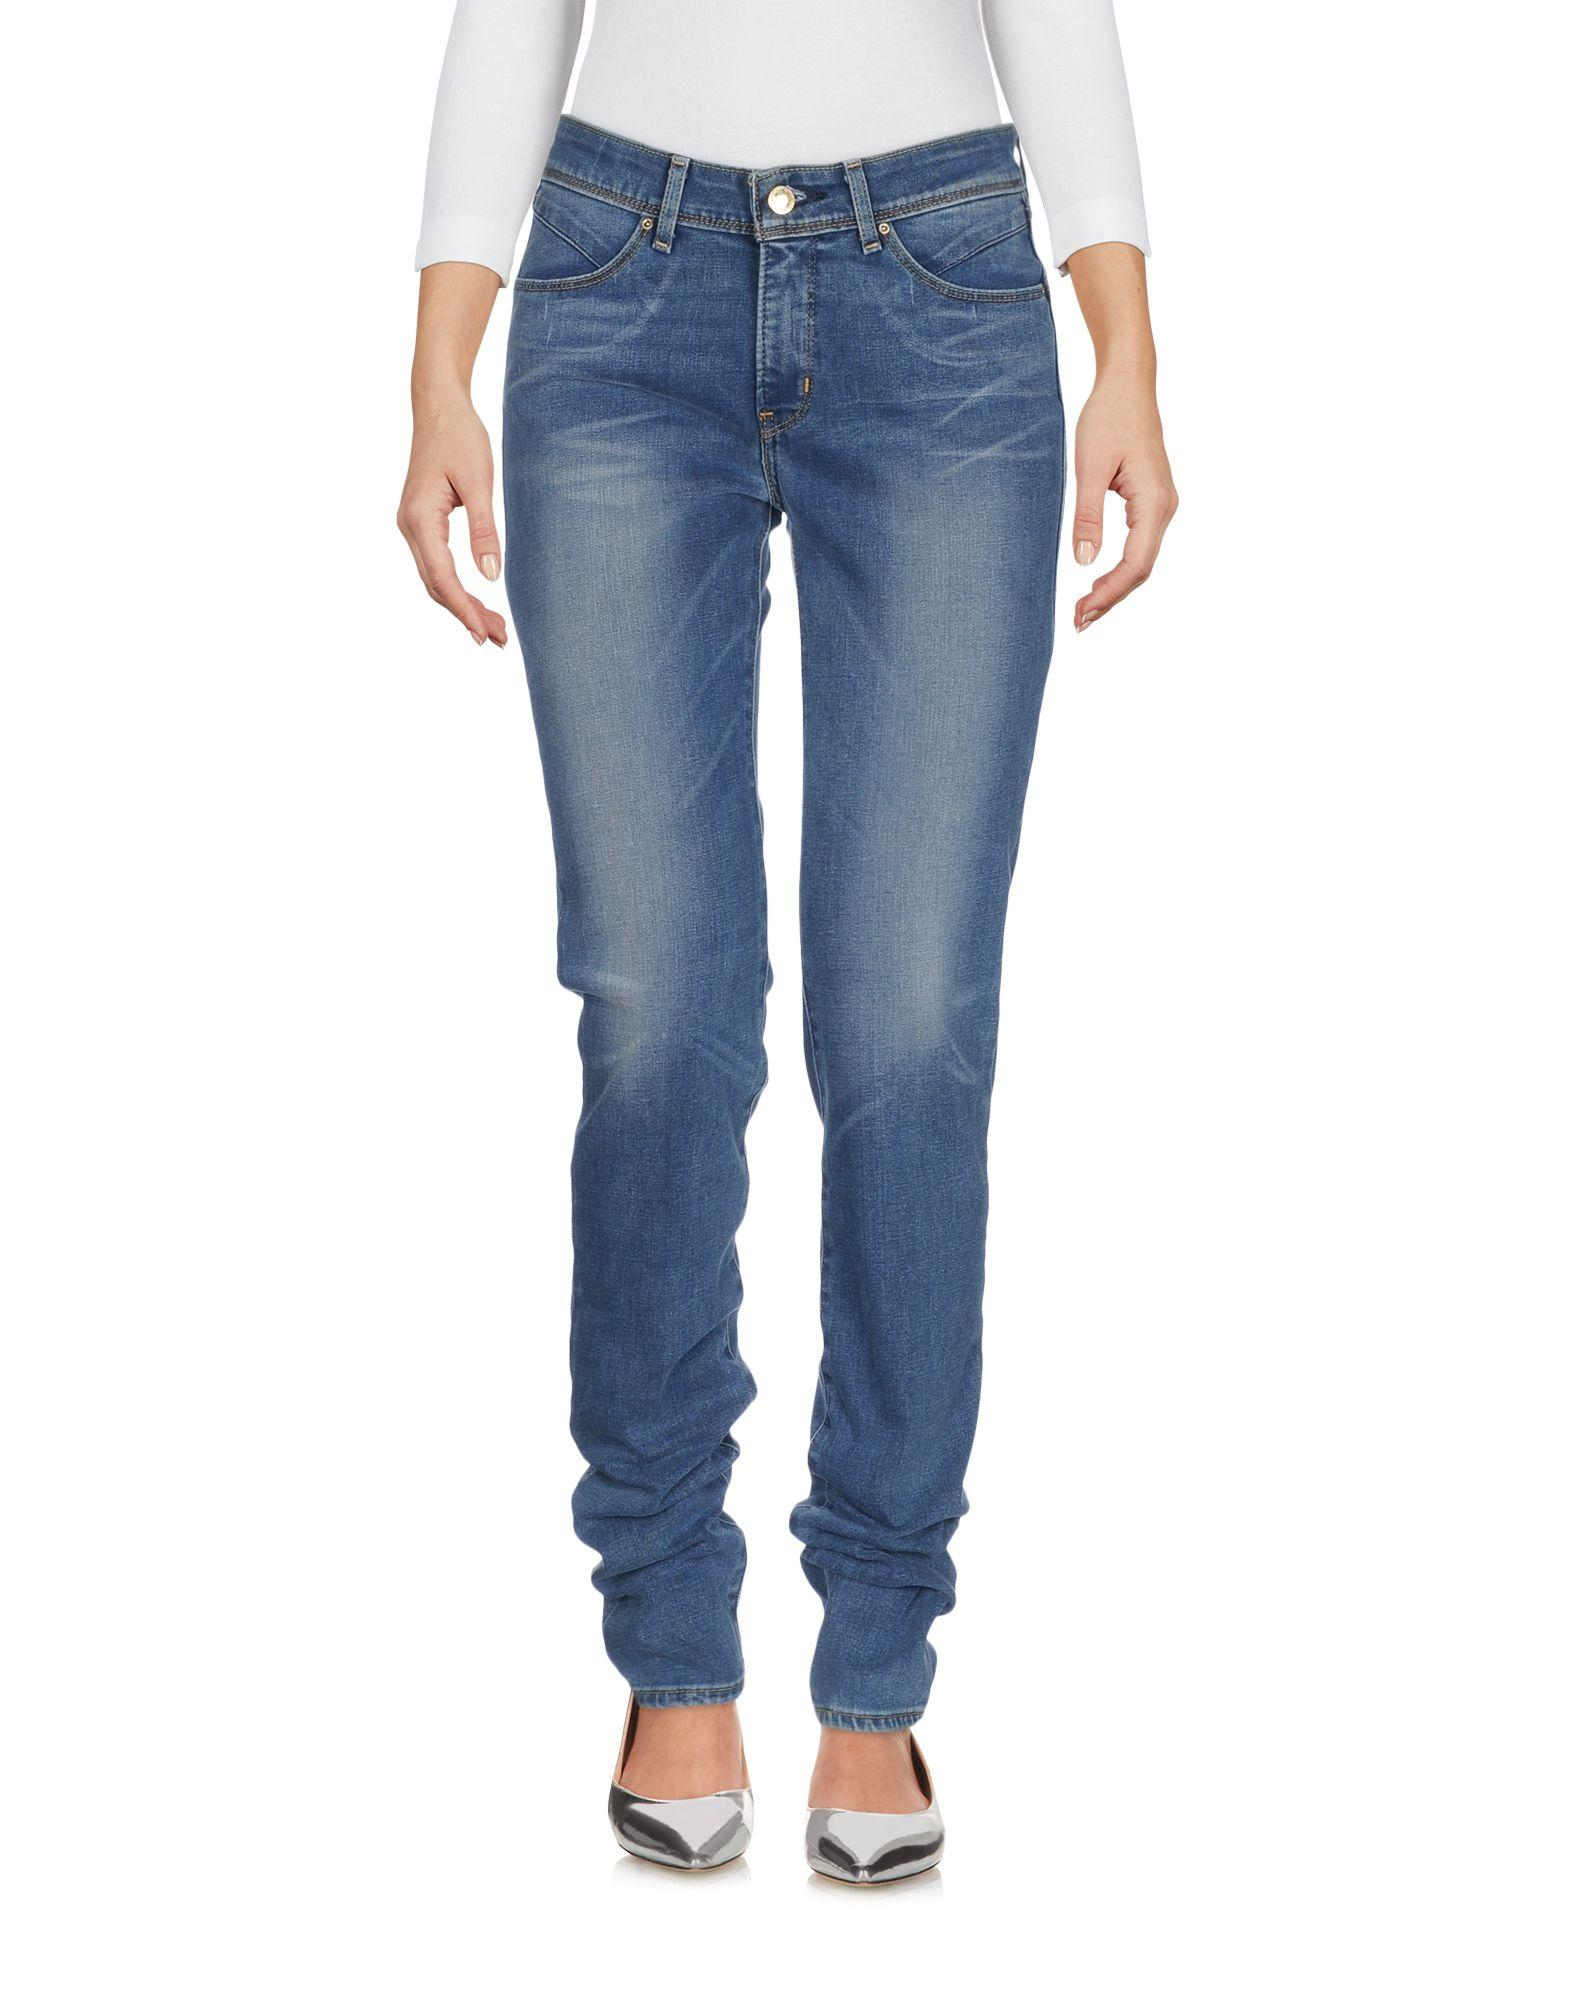 Levi's Jeans In Blue